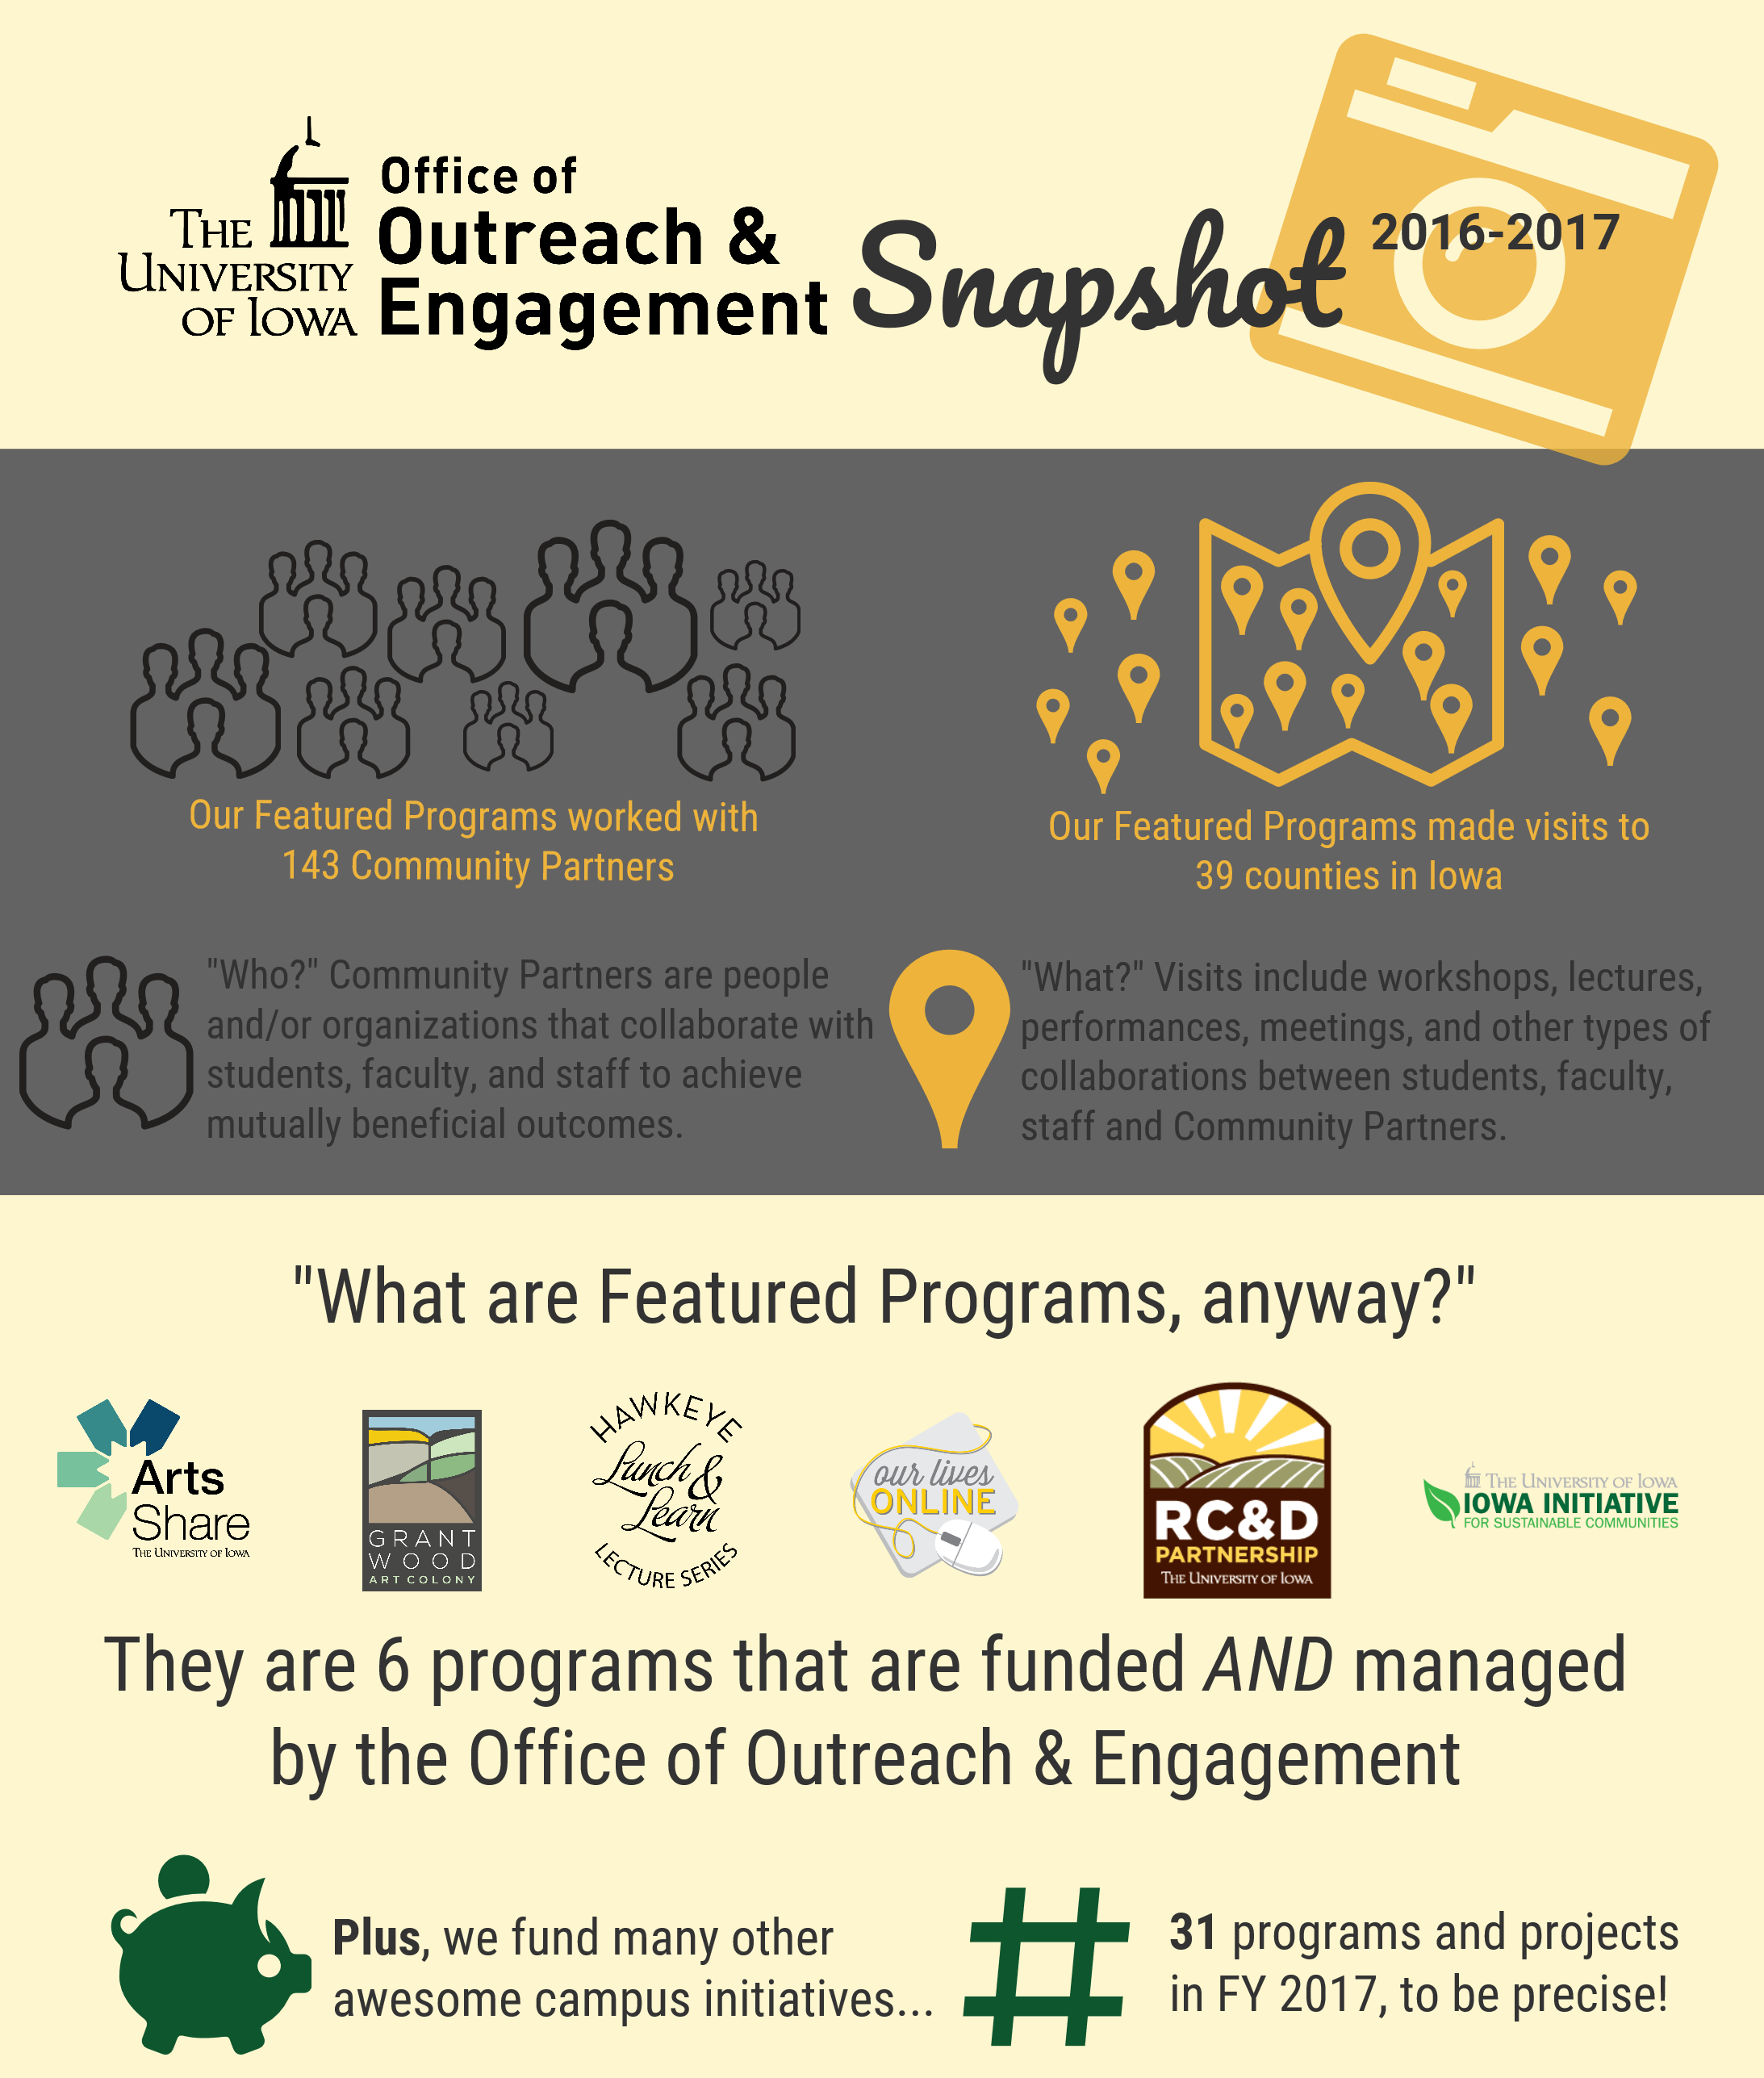 Office of Outreach and Engagement Snapshot